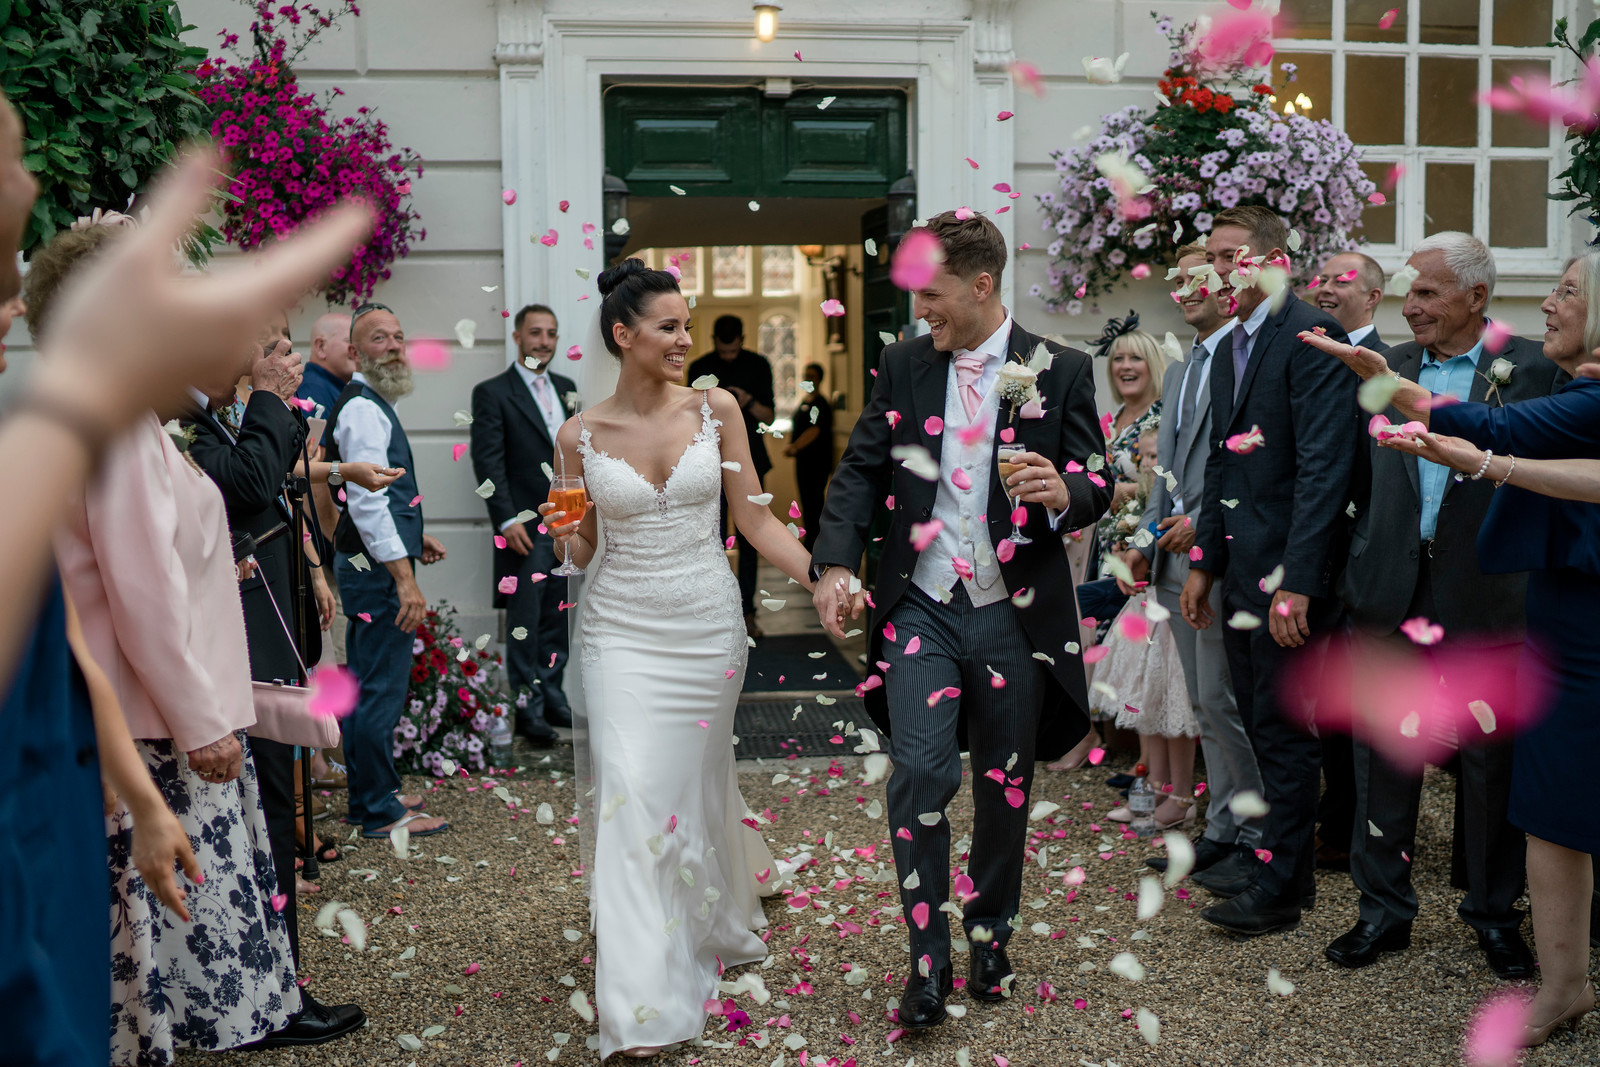 Confetti Wedding Photo - Gosfield Hall Wedding Photo